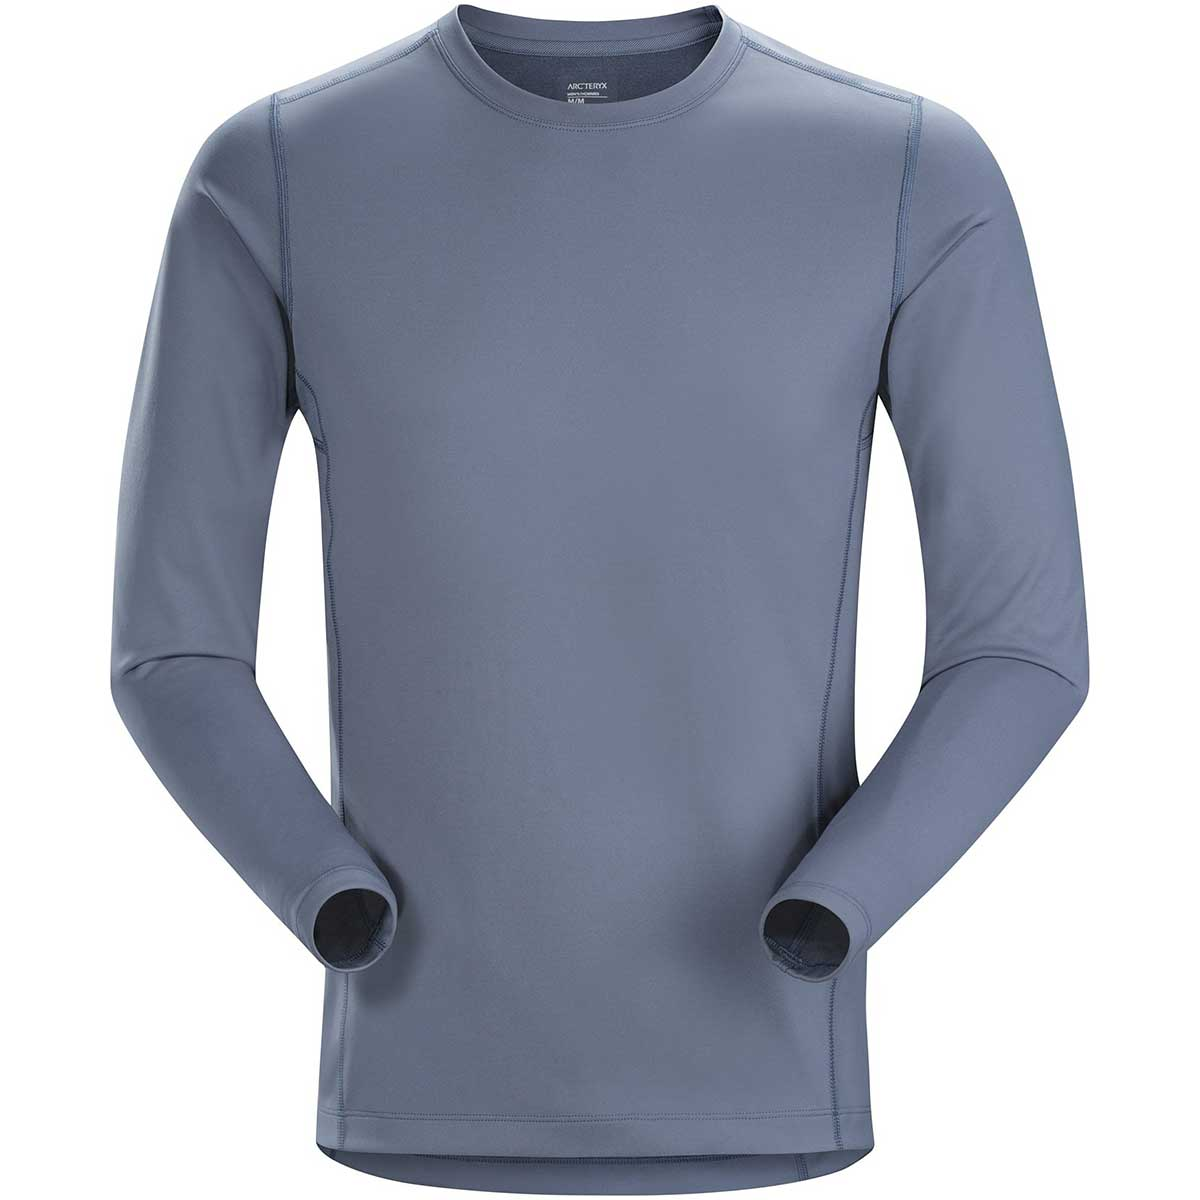 Arcteryx men's Phase AR Crew Top in Proteus front view